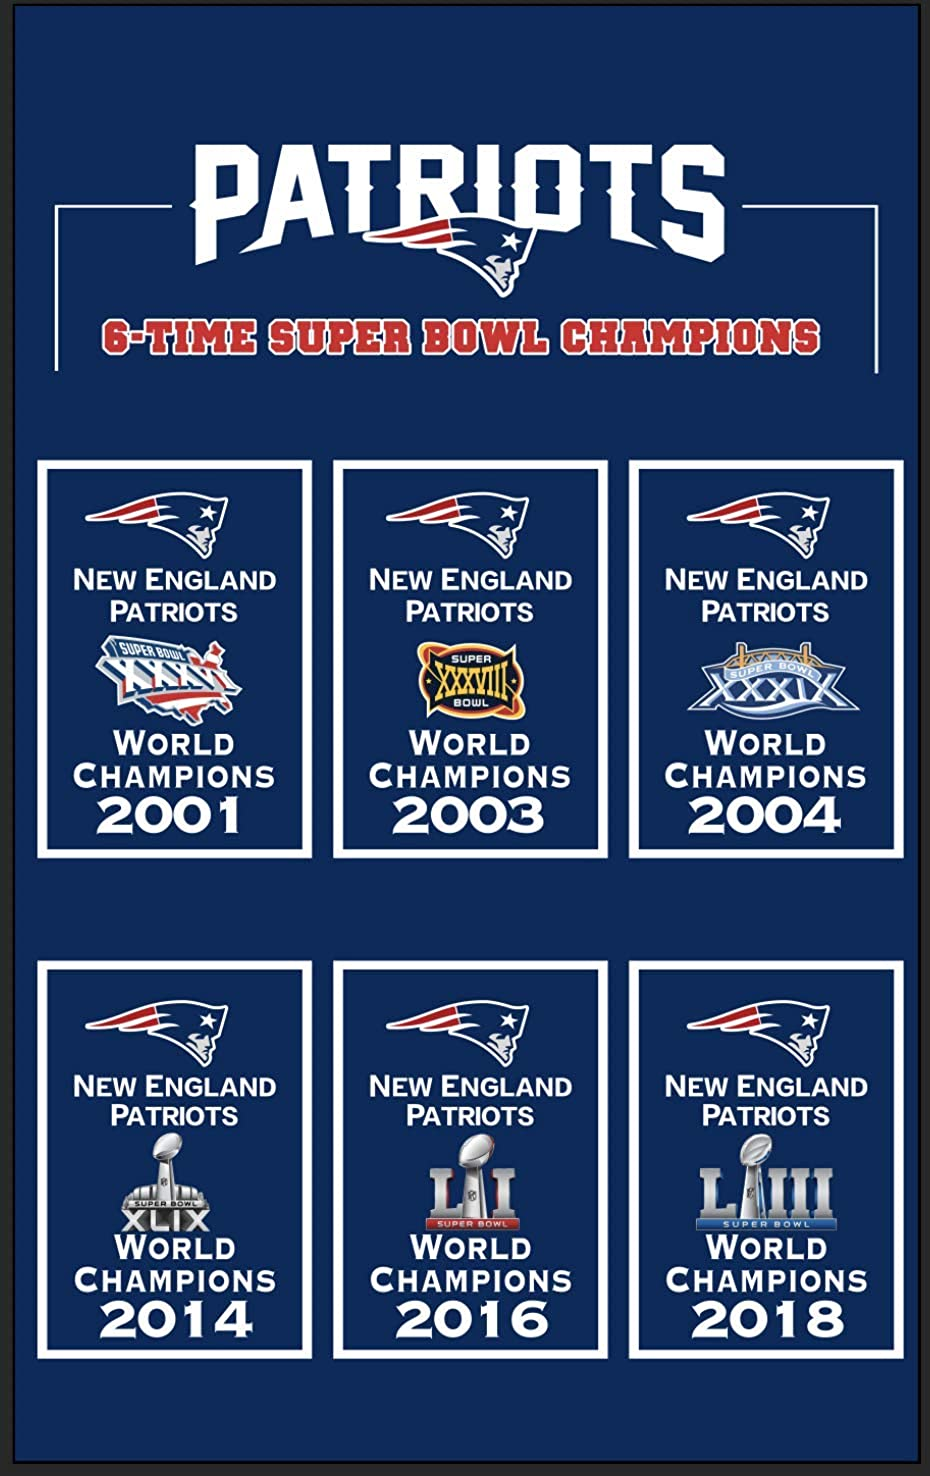 XiaKoMan 6 in 1 Mens The New England 3x5 Patriots Flag Super Bowl 6X Championship with All Super Bowls Champions Gifts for Youth Kids Womens Banner Outdoor/Indoor Patriot Garden Flags